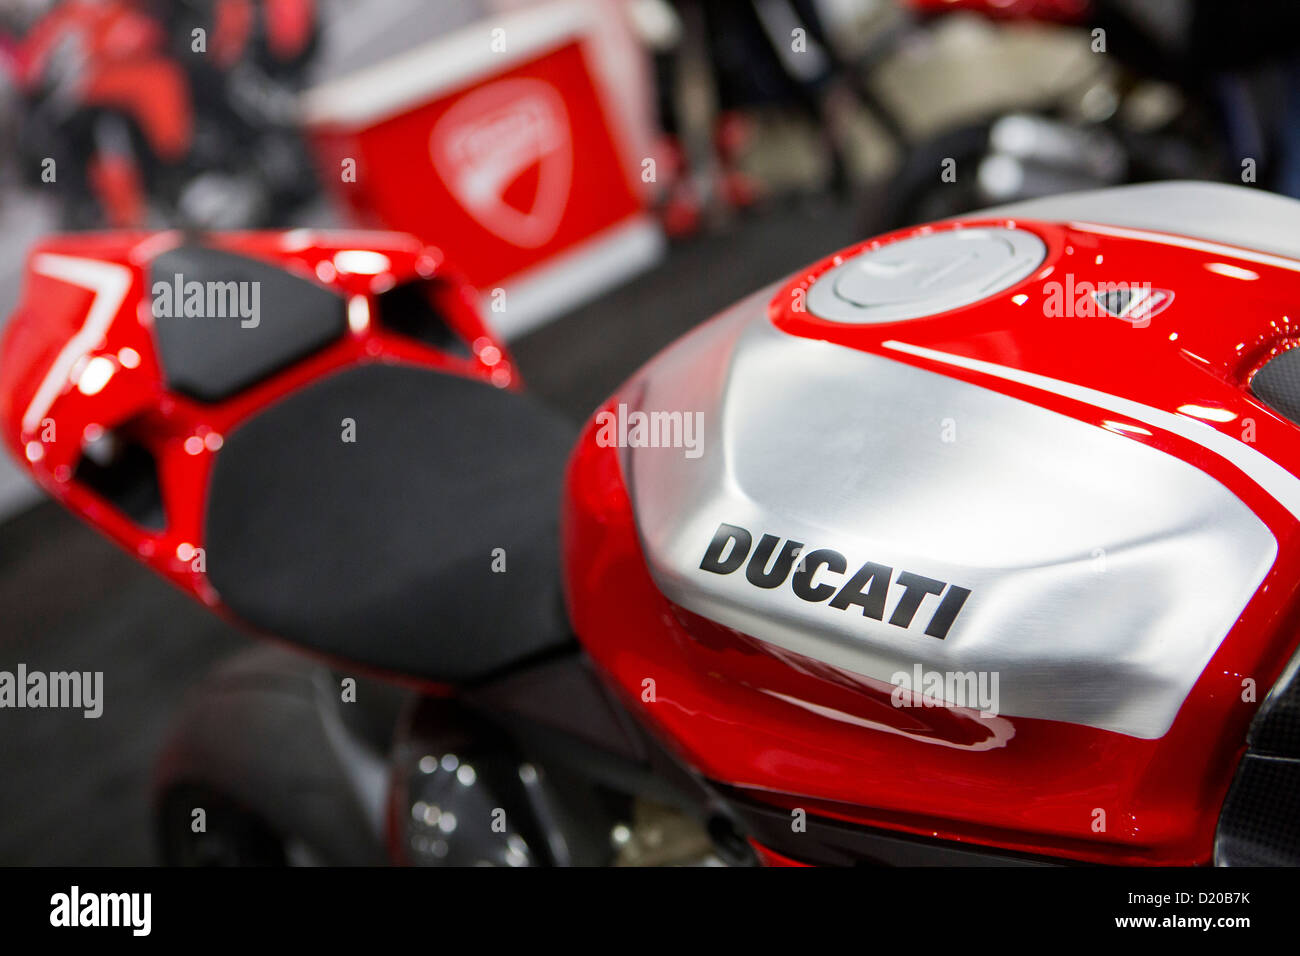 Ducati motorcycles on display at the Washington Motorcycle Show. - Stock Image